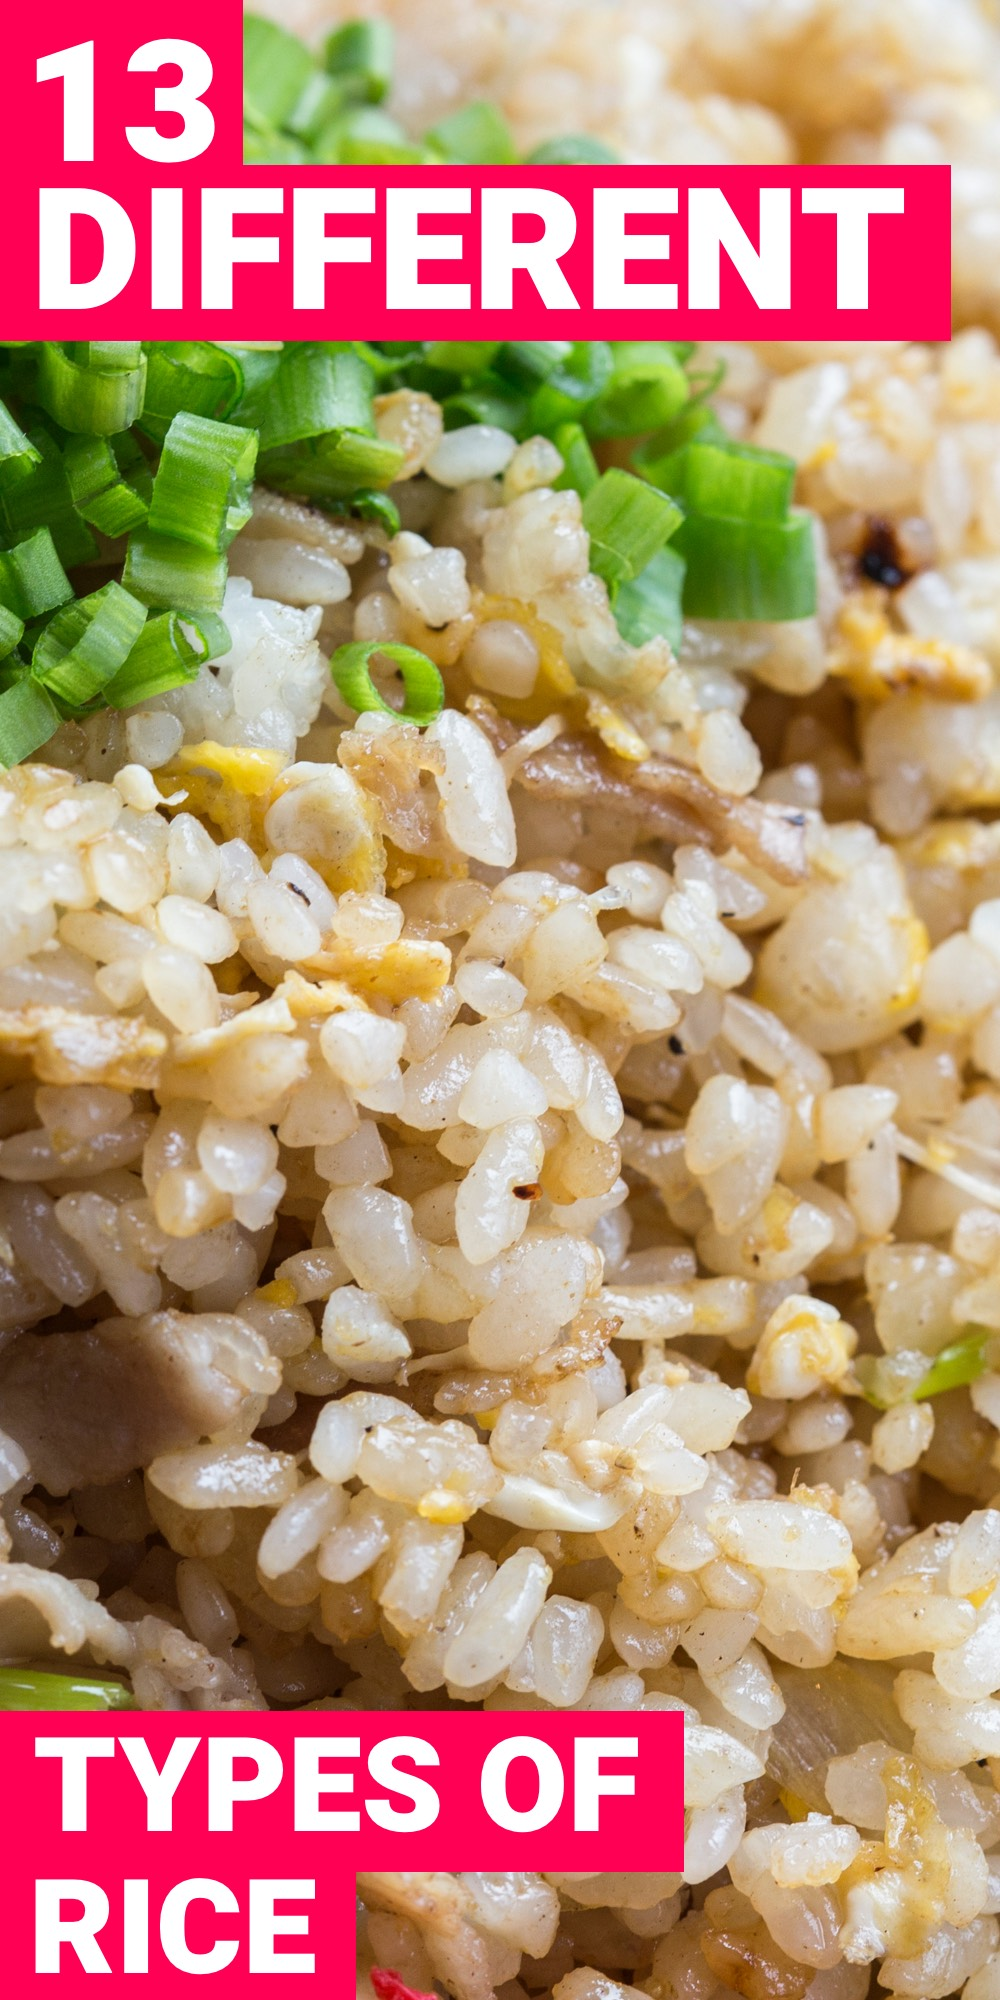 If you looking for different types of rice, you've come to the right place. Here are 13 different types of rice that you should know about.